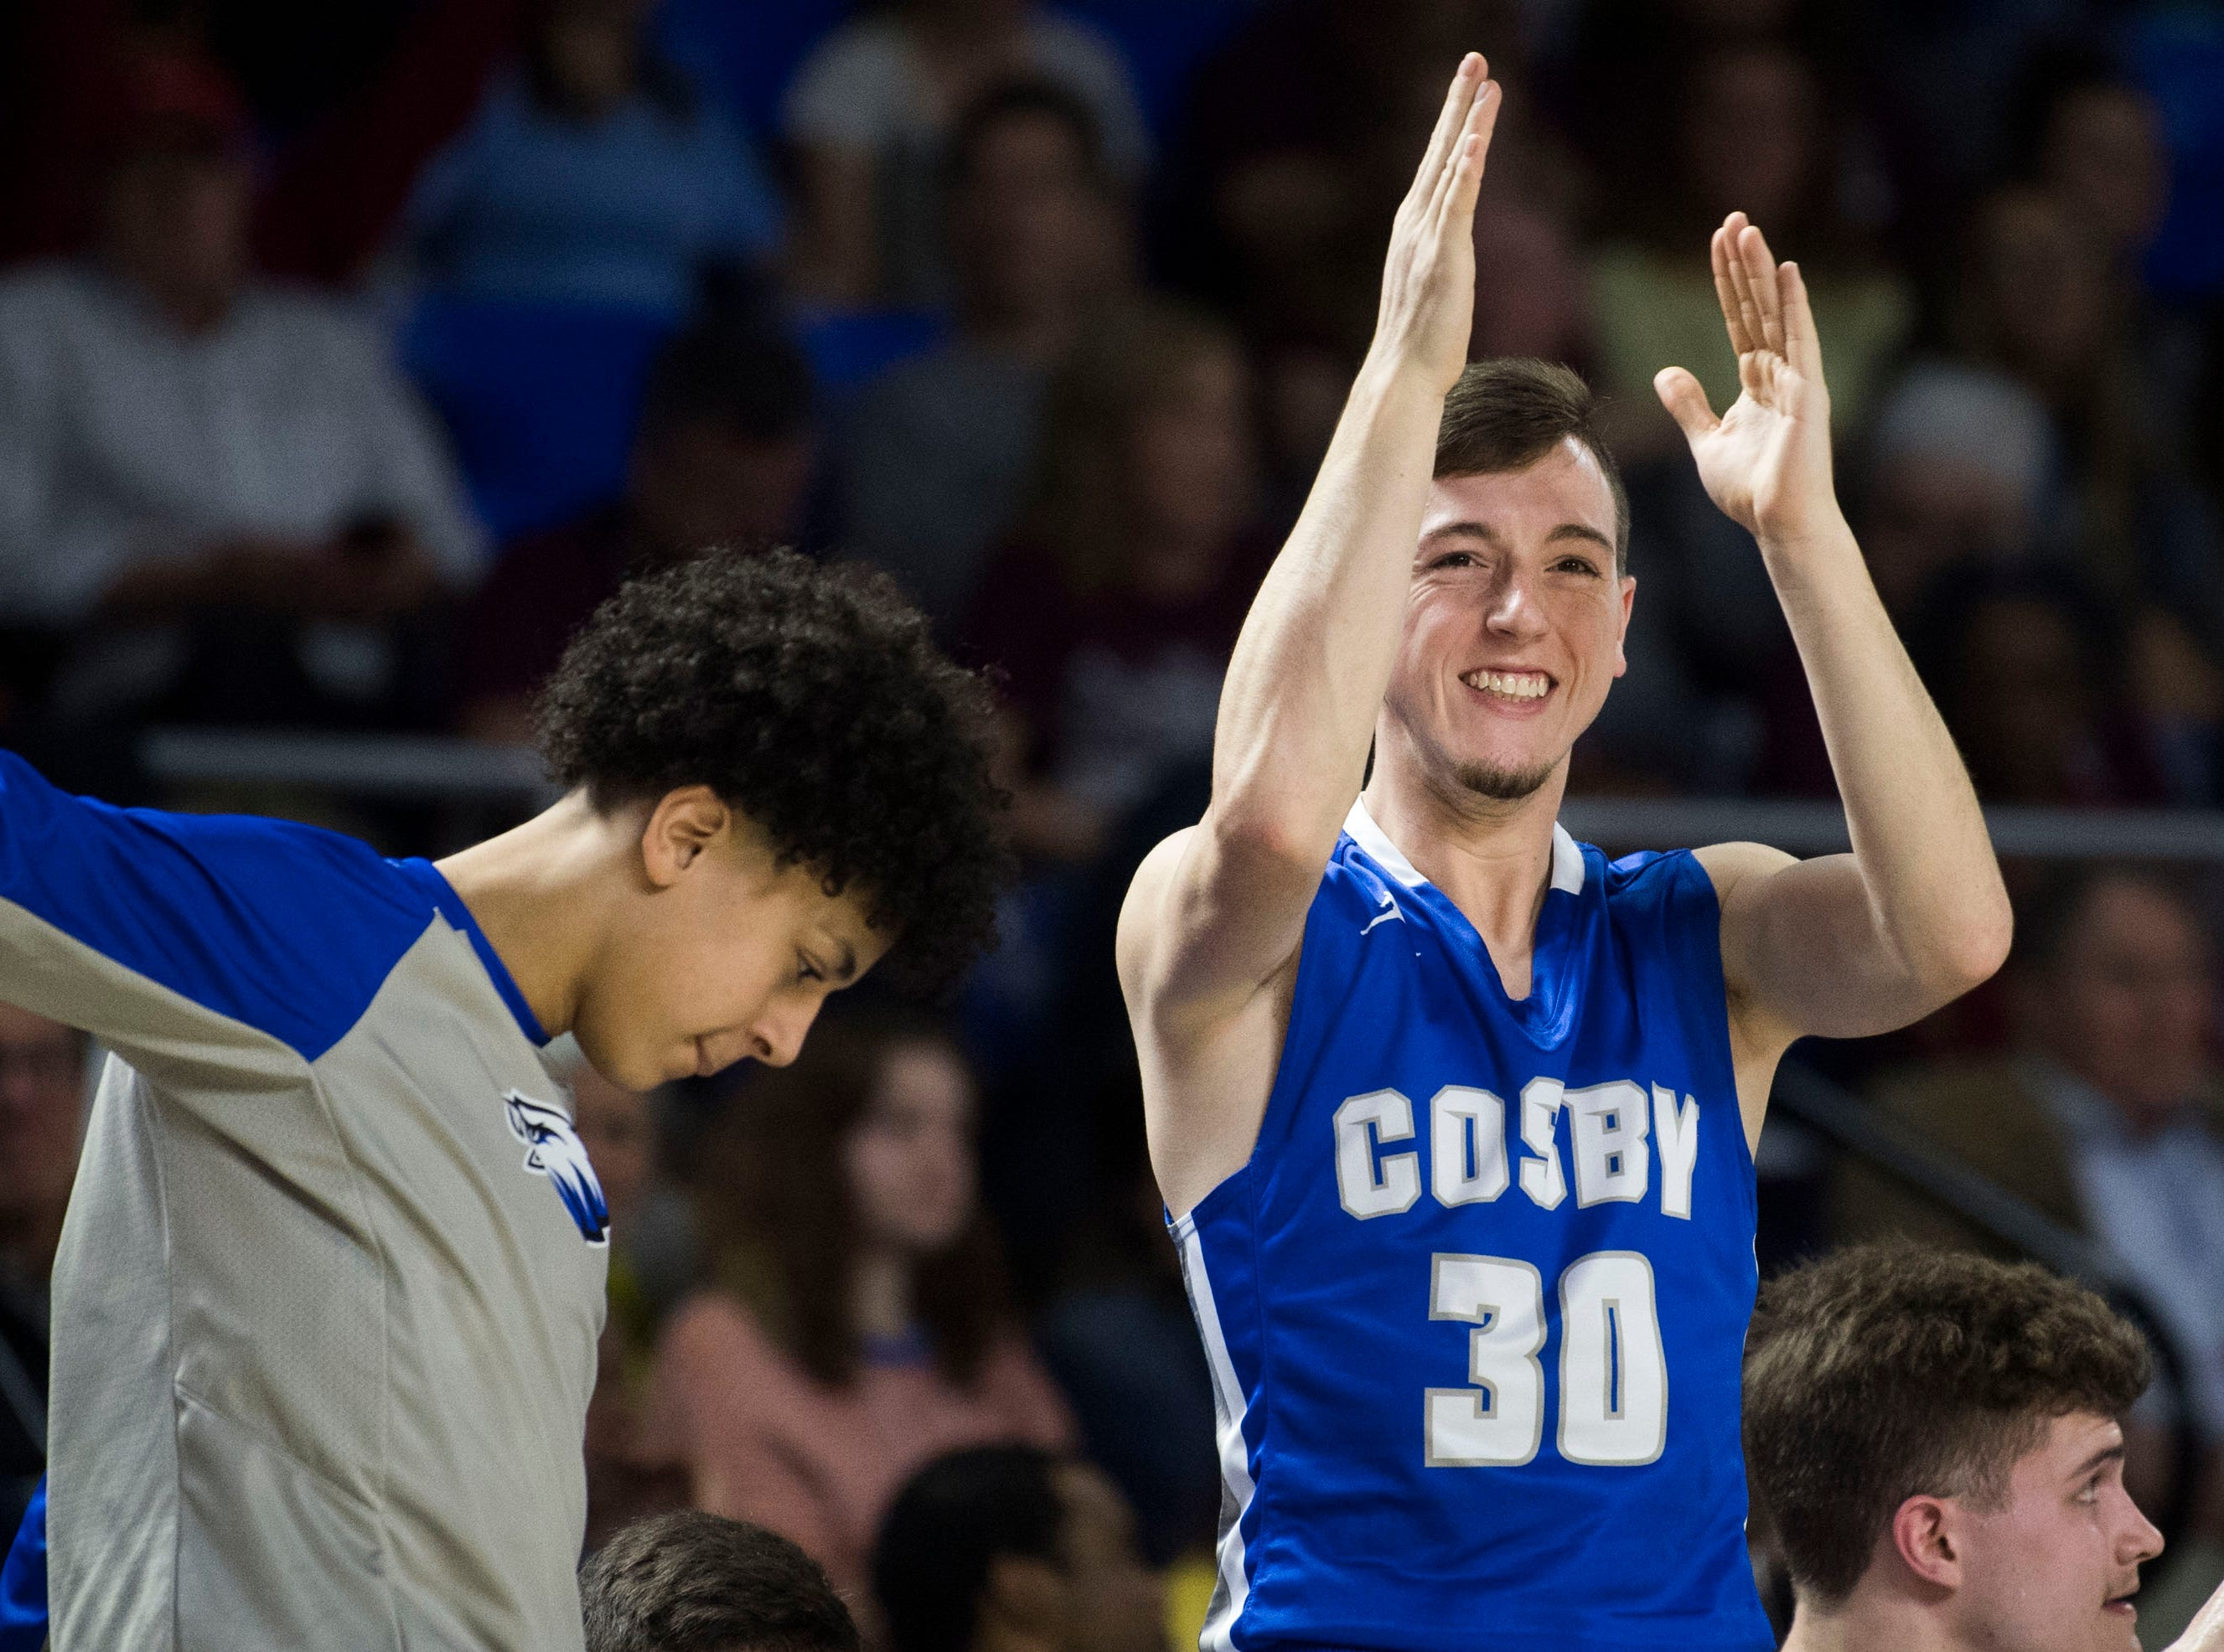 Cosby's Chase Williamson (30) celebrates on the bench during a TSSAA A state quarterfinal game between Eagleville and Cosby at the Murphy Center in Murfreesboro, Thursday, March 14, 2019. Eagleville defeated Cosby 66-55.